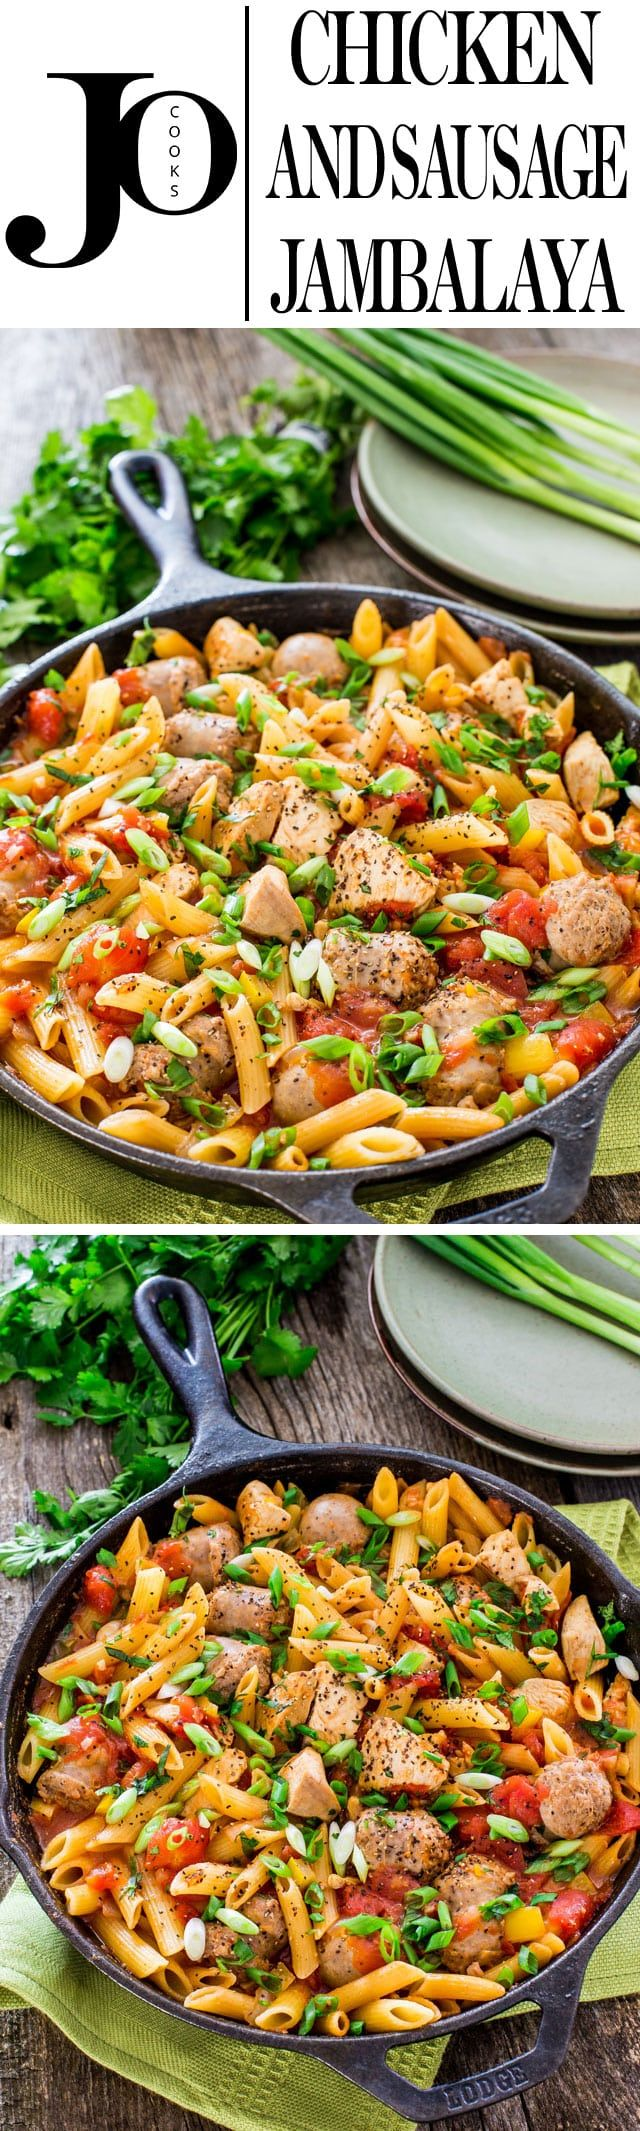 This Chicken and Sausage Jambalaya is my delicious personal take on a classic recipe, with chicken and Italian sausage.